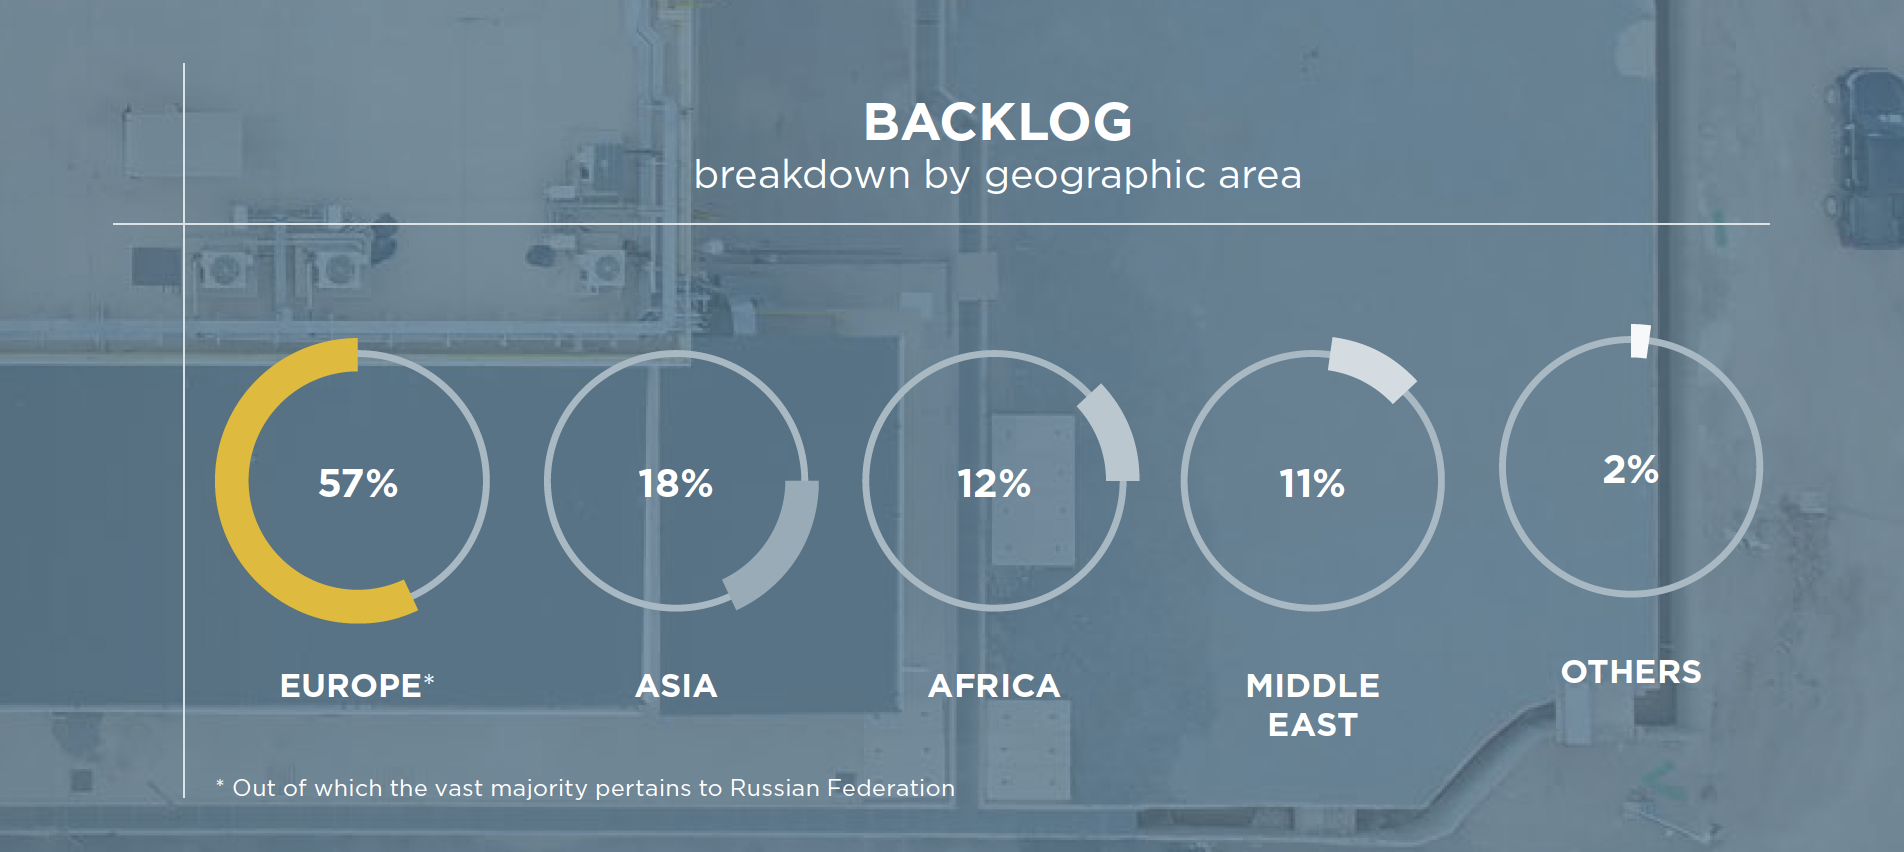 BACKLOG breakdown by geographic area